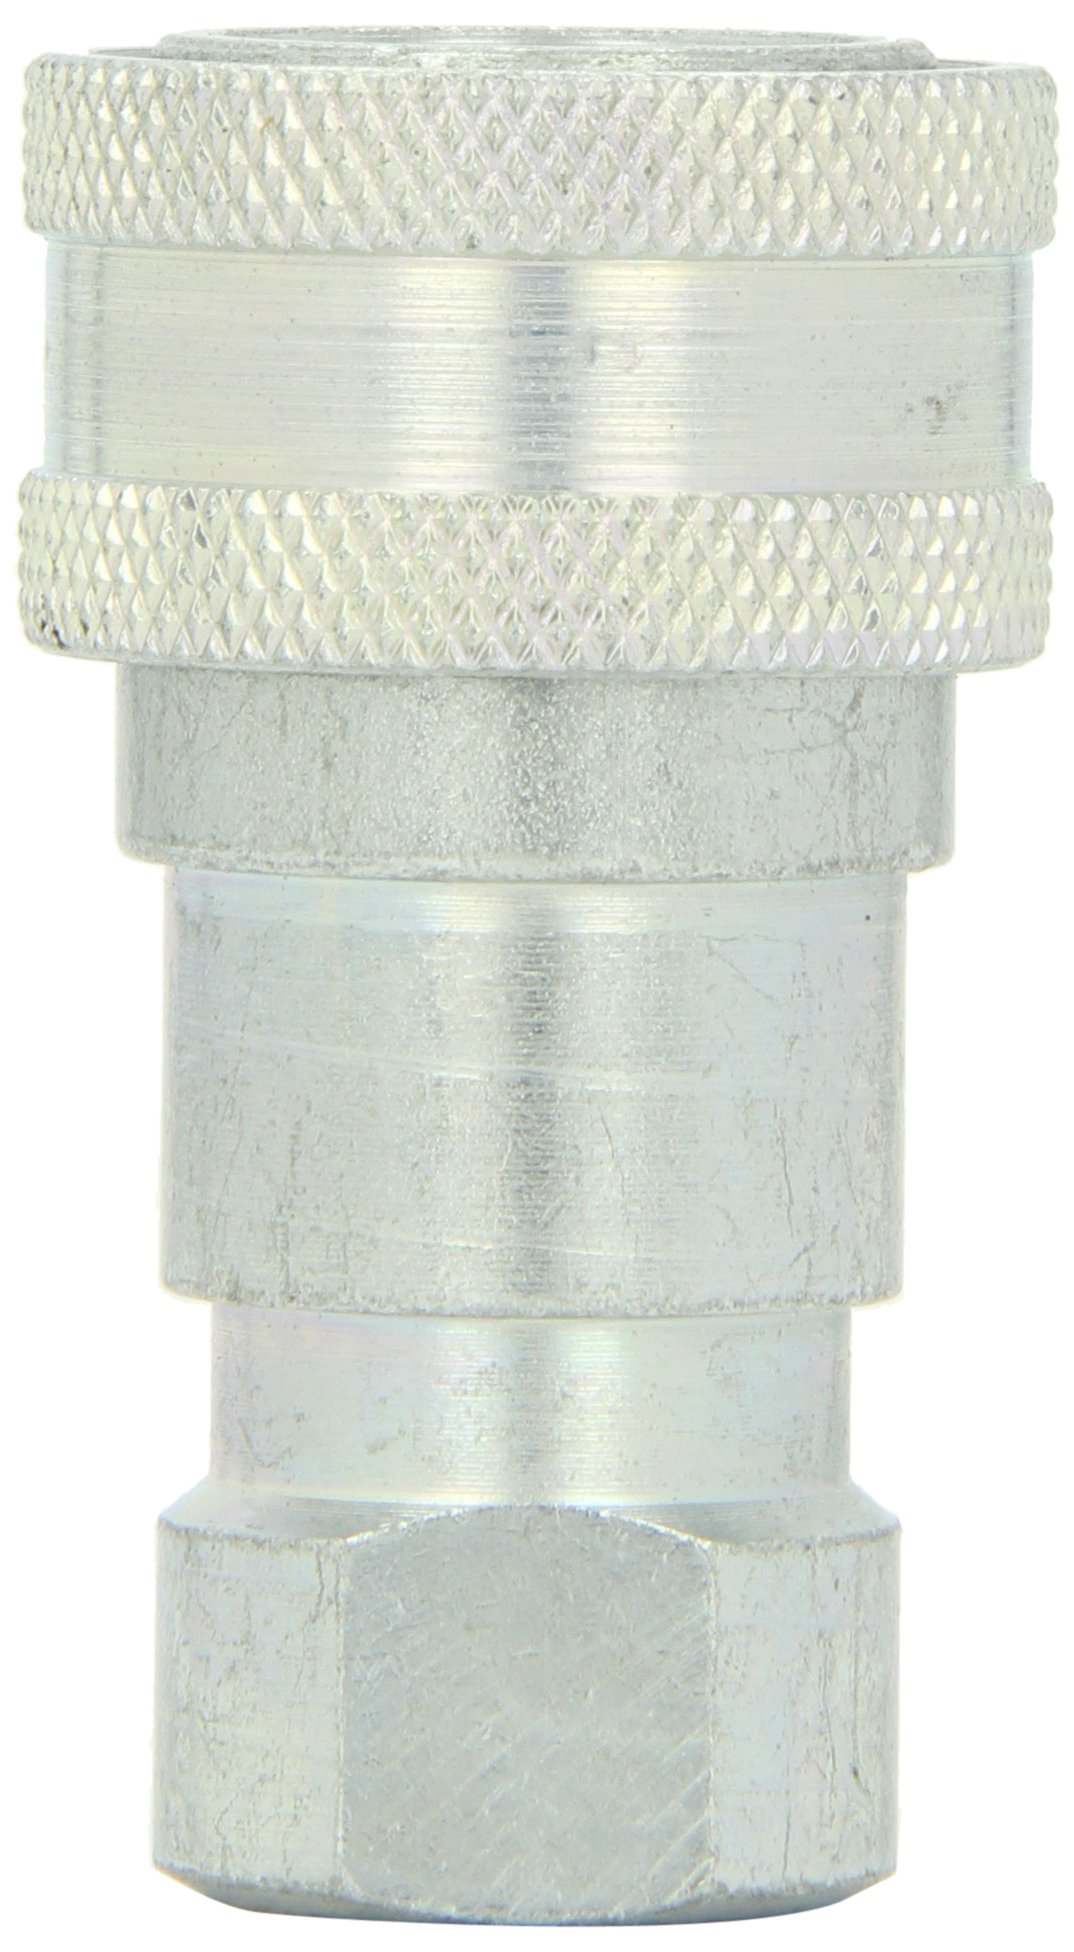 Dixon B16-363 Brass Industrial Hydraulic Quick-Connect Fitting, Poppet Valve Coupler, 3/8'' Coupling x 3/8'' - 18 NPTF